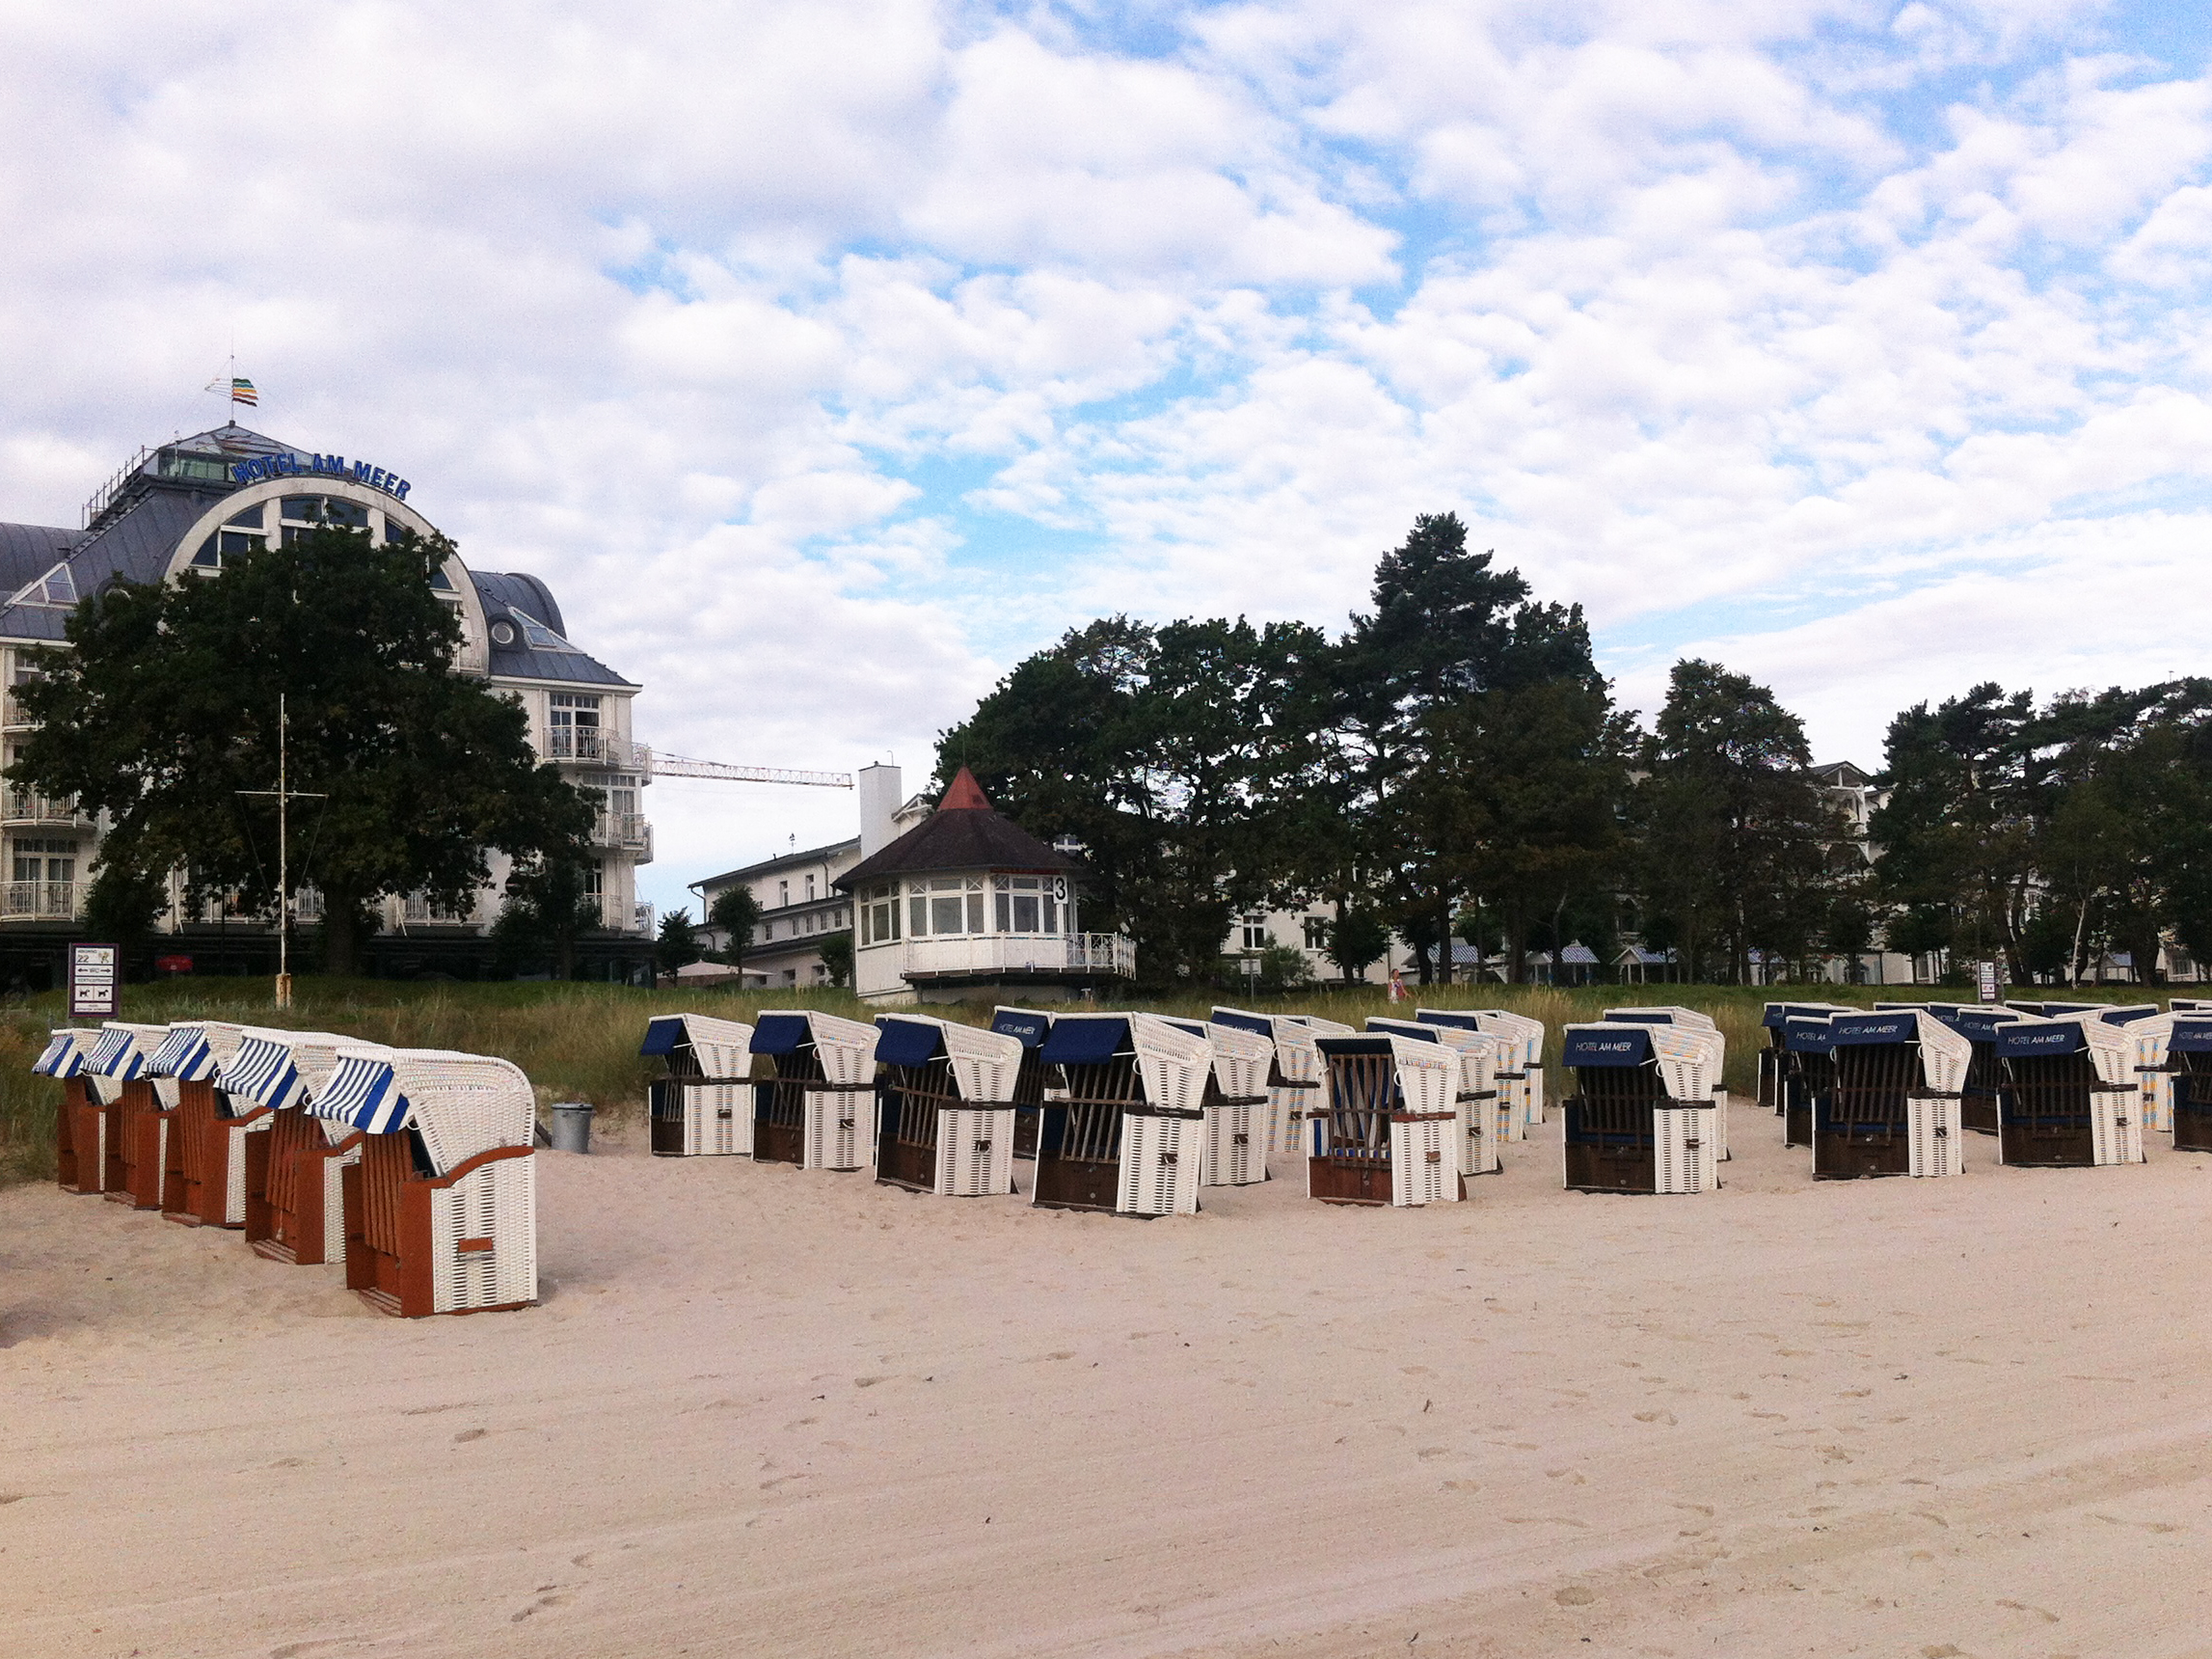 baltic-sea-meer-urlaub